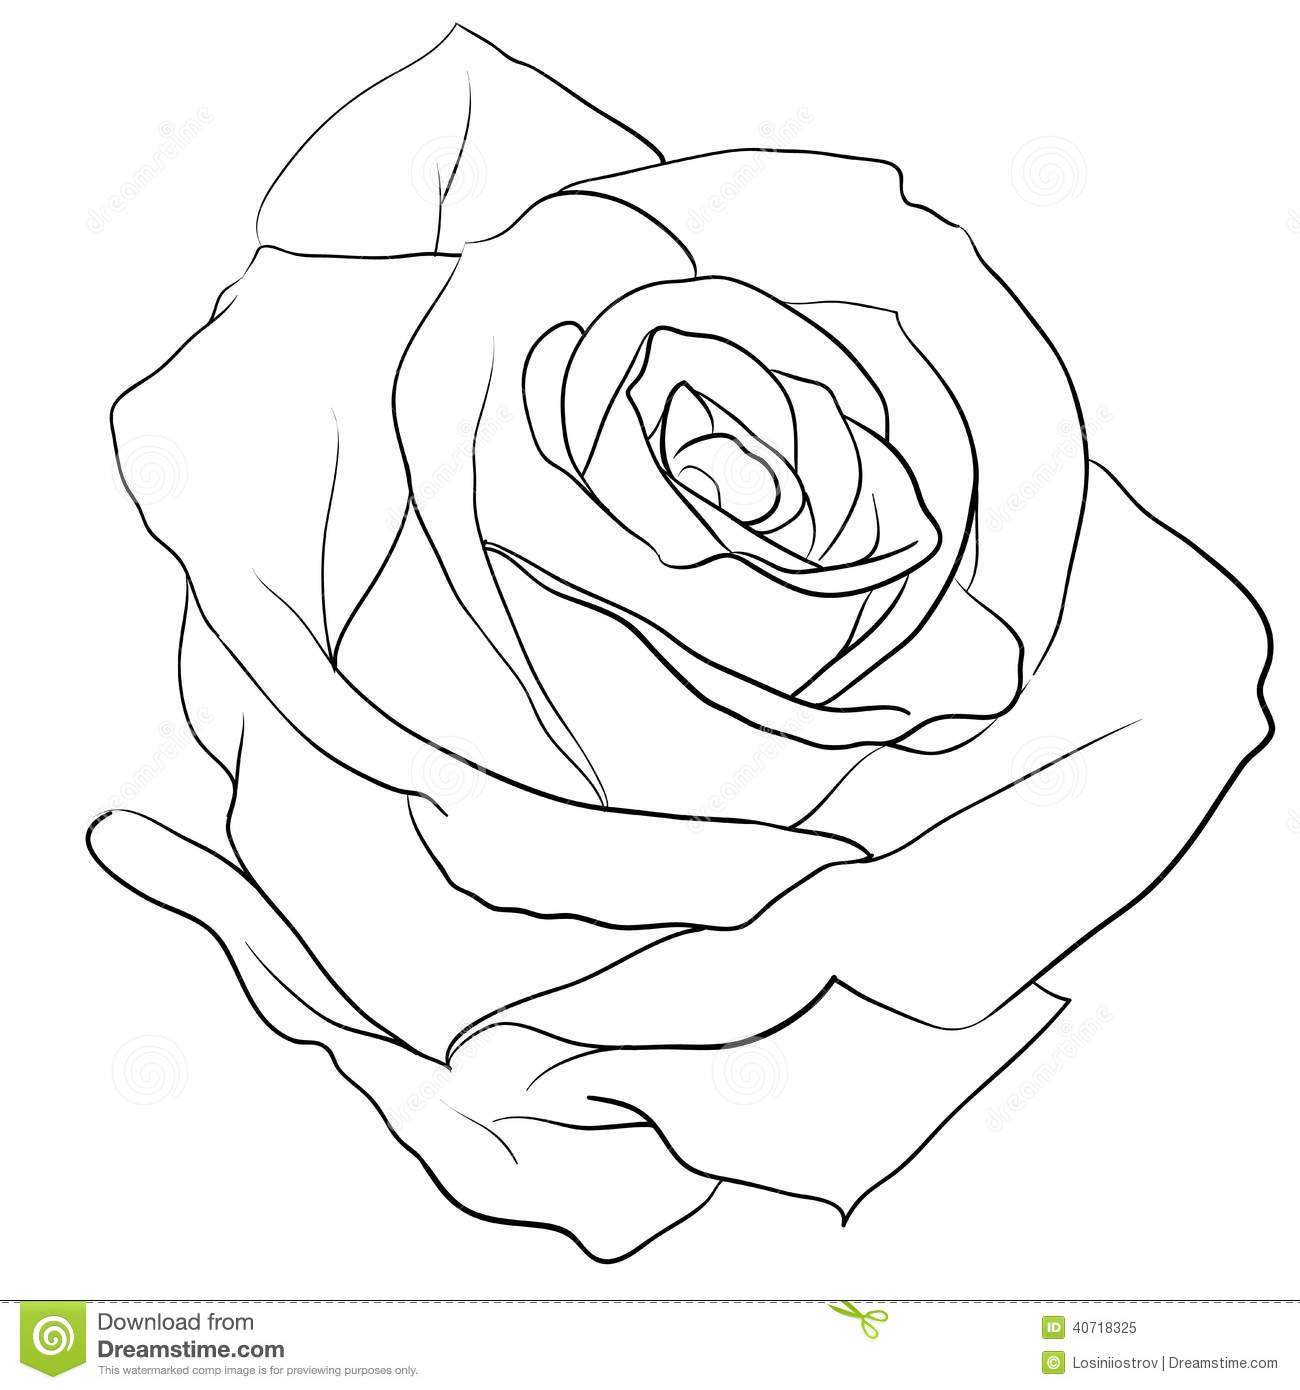 Simple Rose Tattoo Outline: Rosebud Stock Vector. Illustration Of Black, Beauty